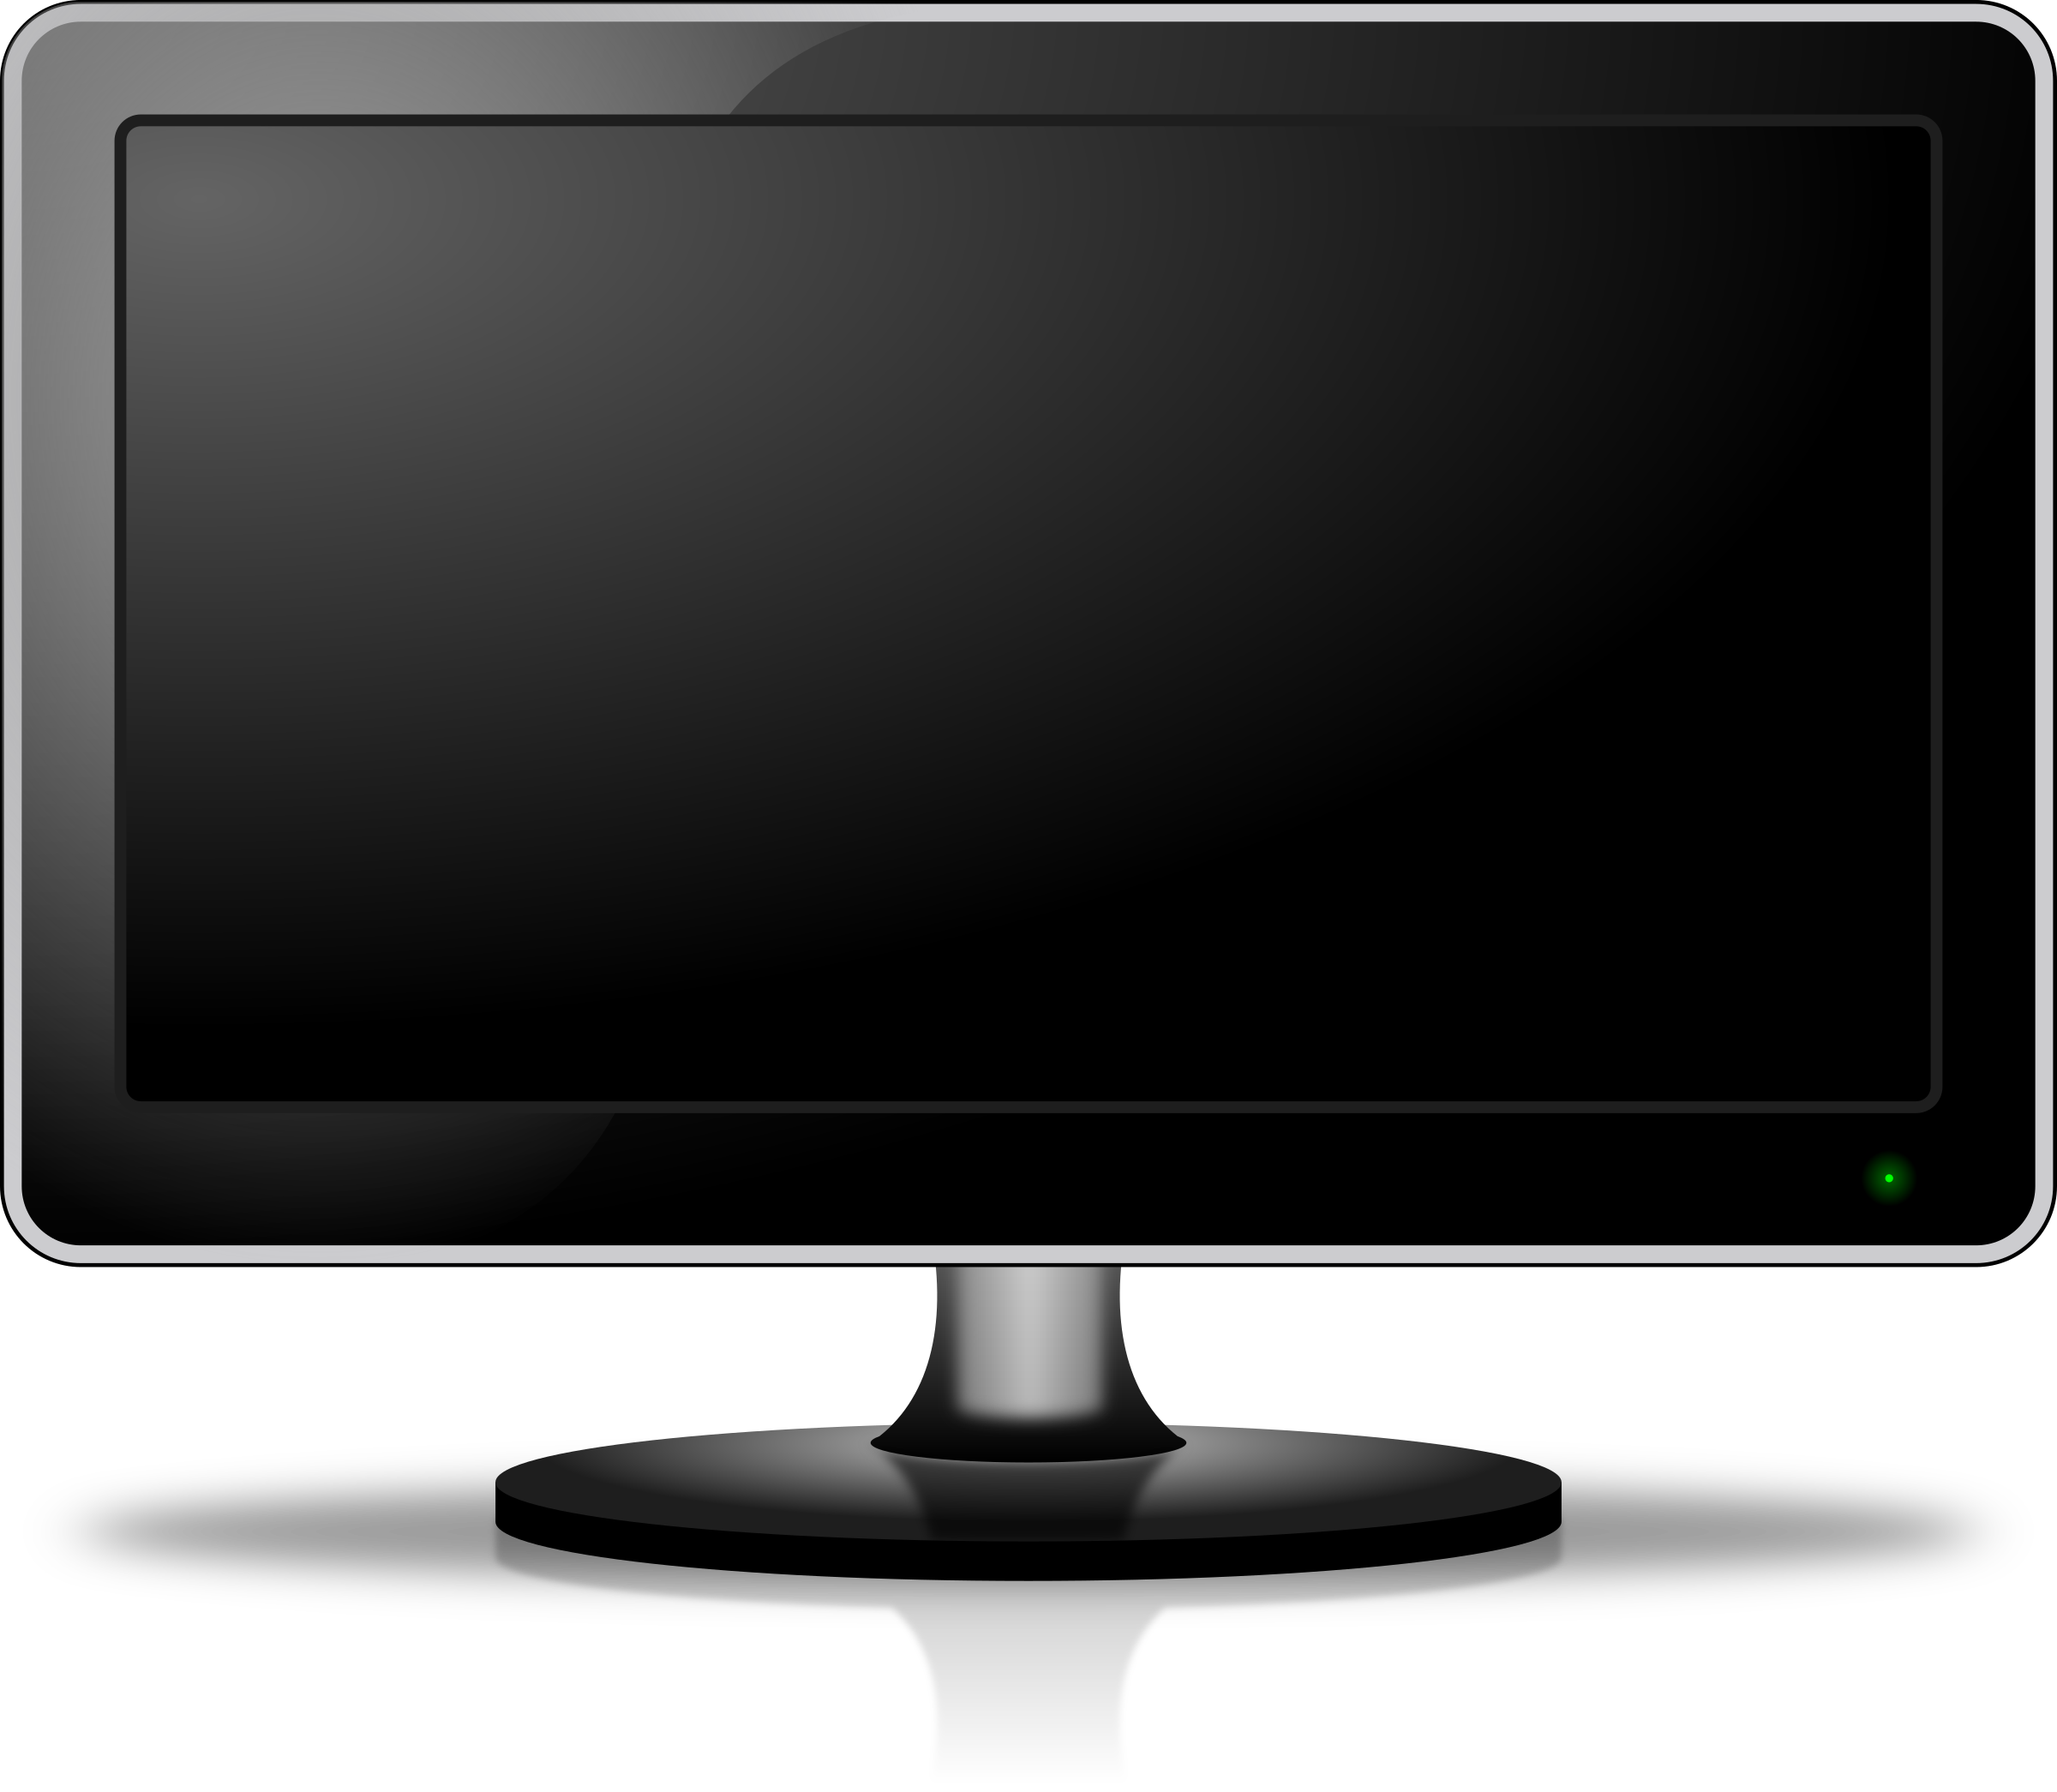 Monitor screen by easy